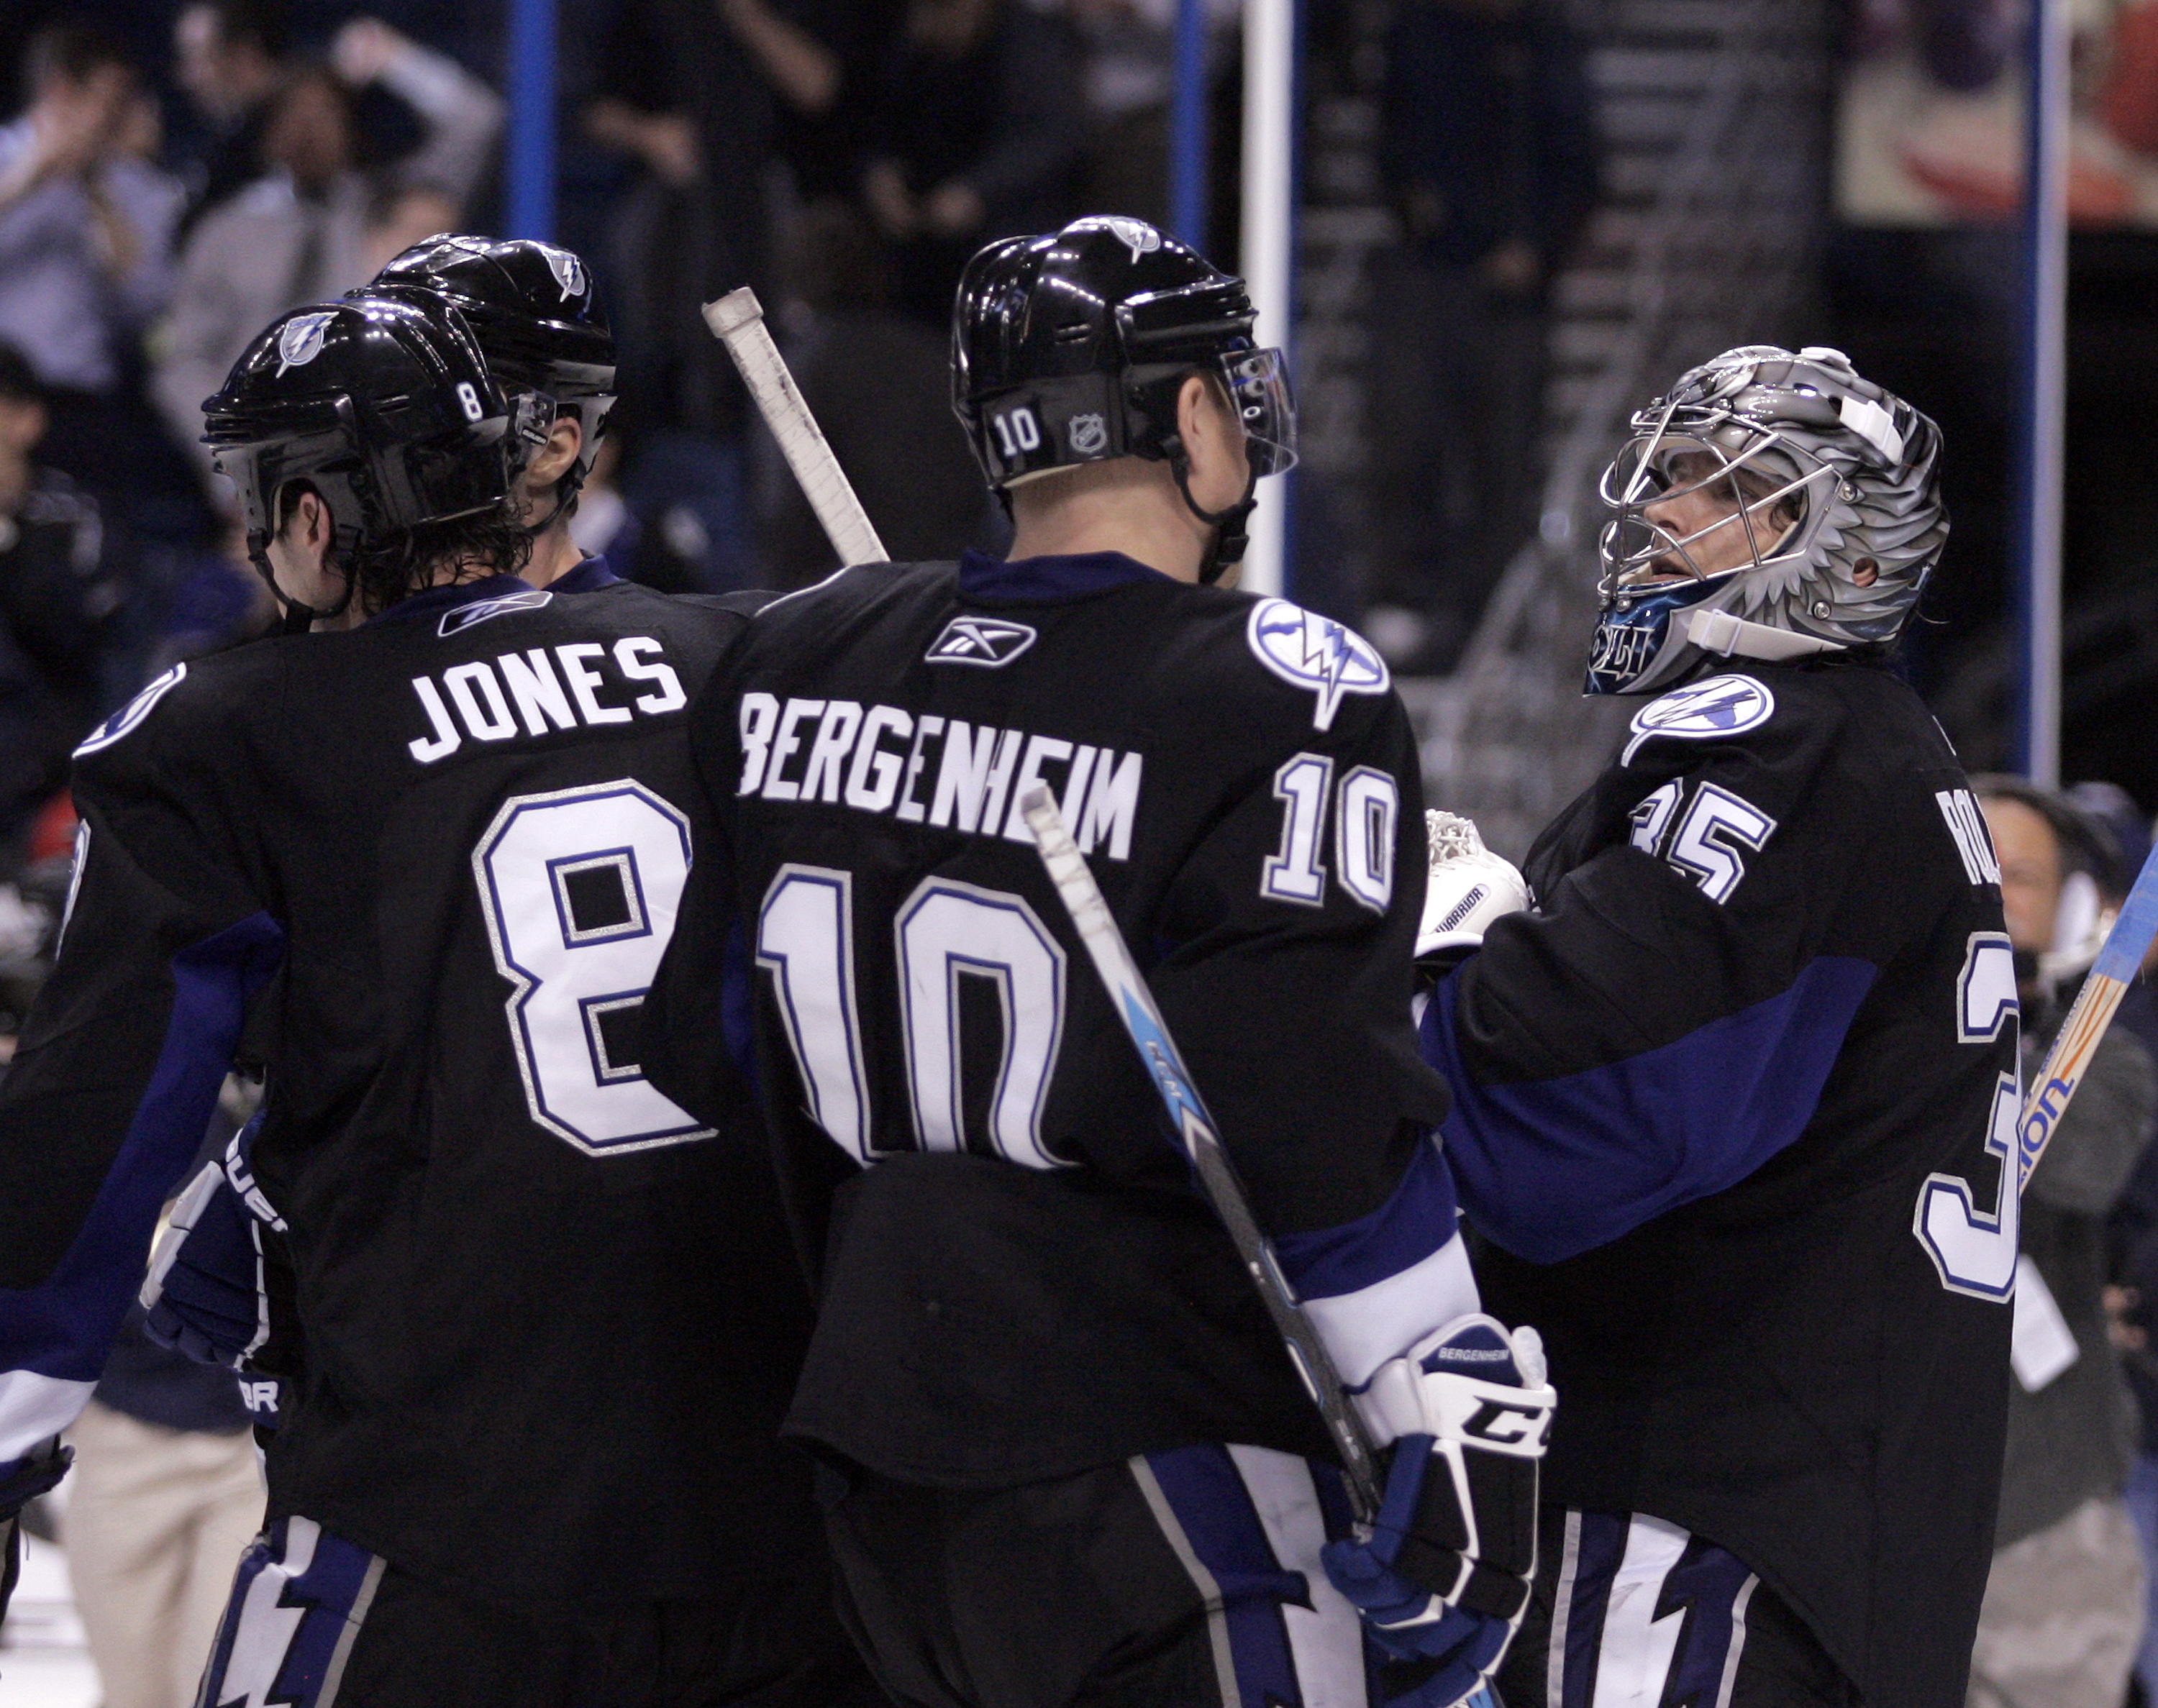 TAMPA, FL - JANUARY 25:  Dwayne Roloson #35 of the Tampa Bay Lightning is congratulated by teammate Sean Bergenheim #10 after shutting out the Toronto Maple Leafs at St. Pete Times Forum on January 25, 2011 in Tampa, Florida.  The Lightning defeated the L